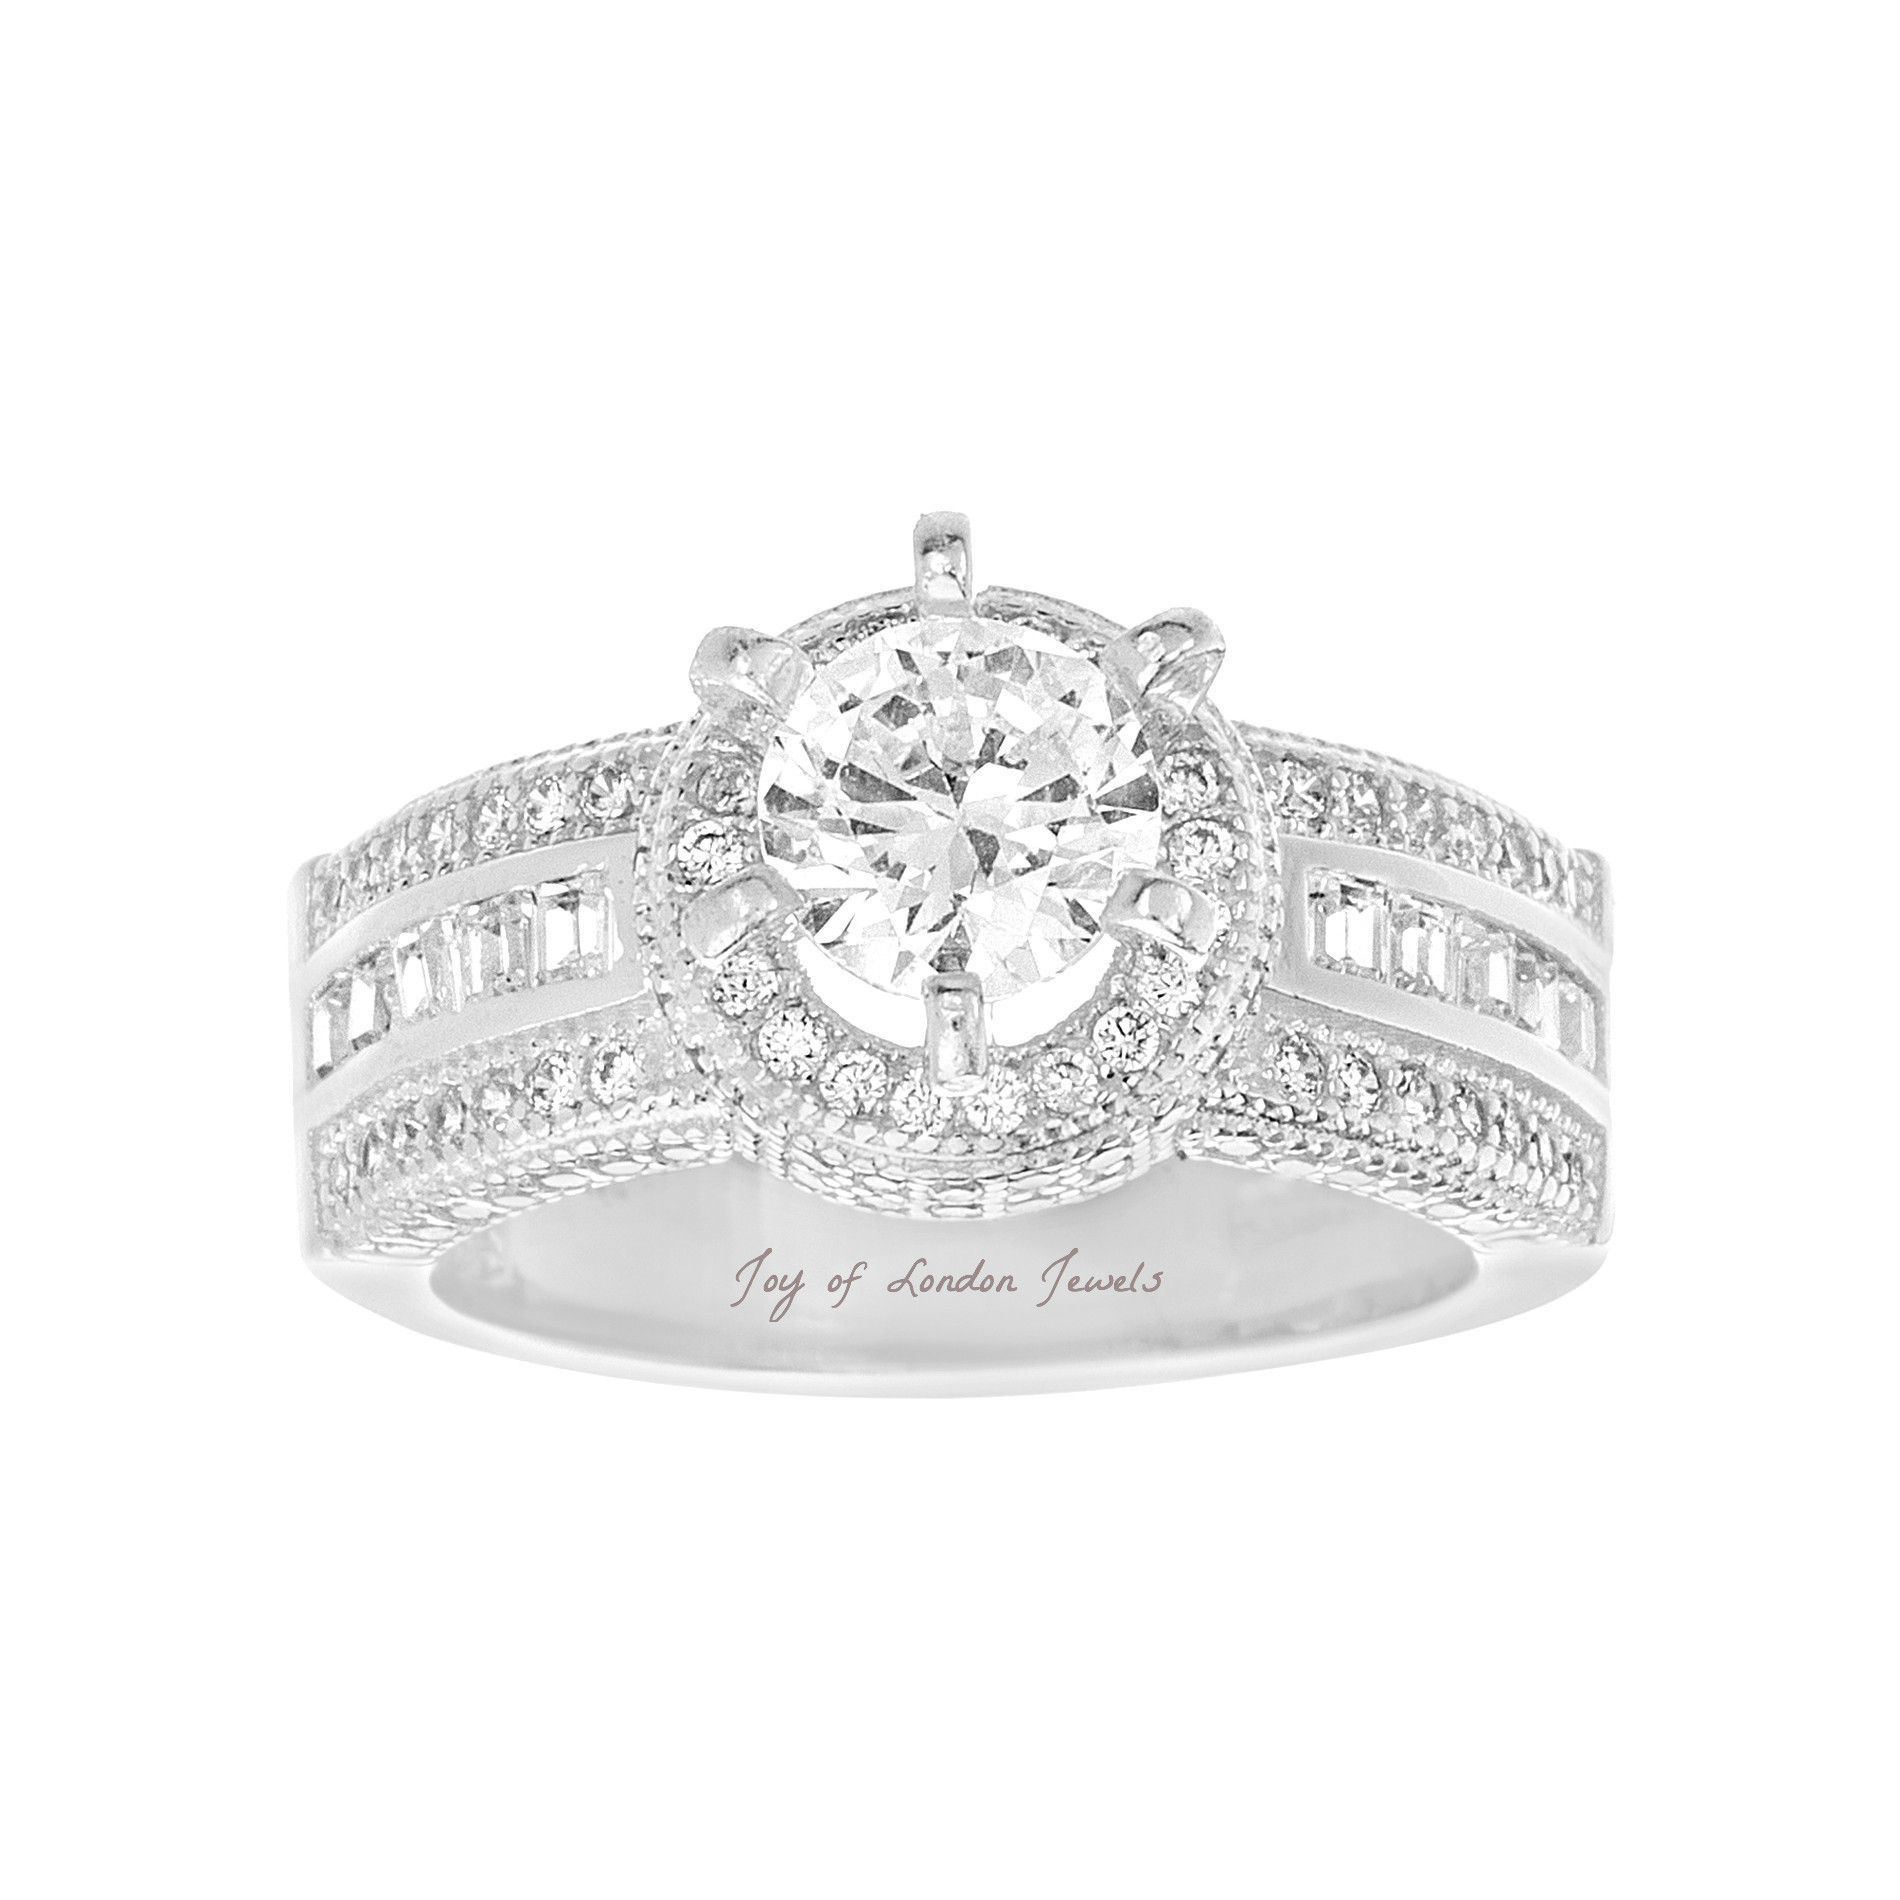 blog all jewelers image engagement view filigree menu test rings layered